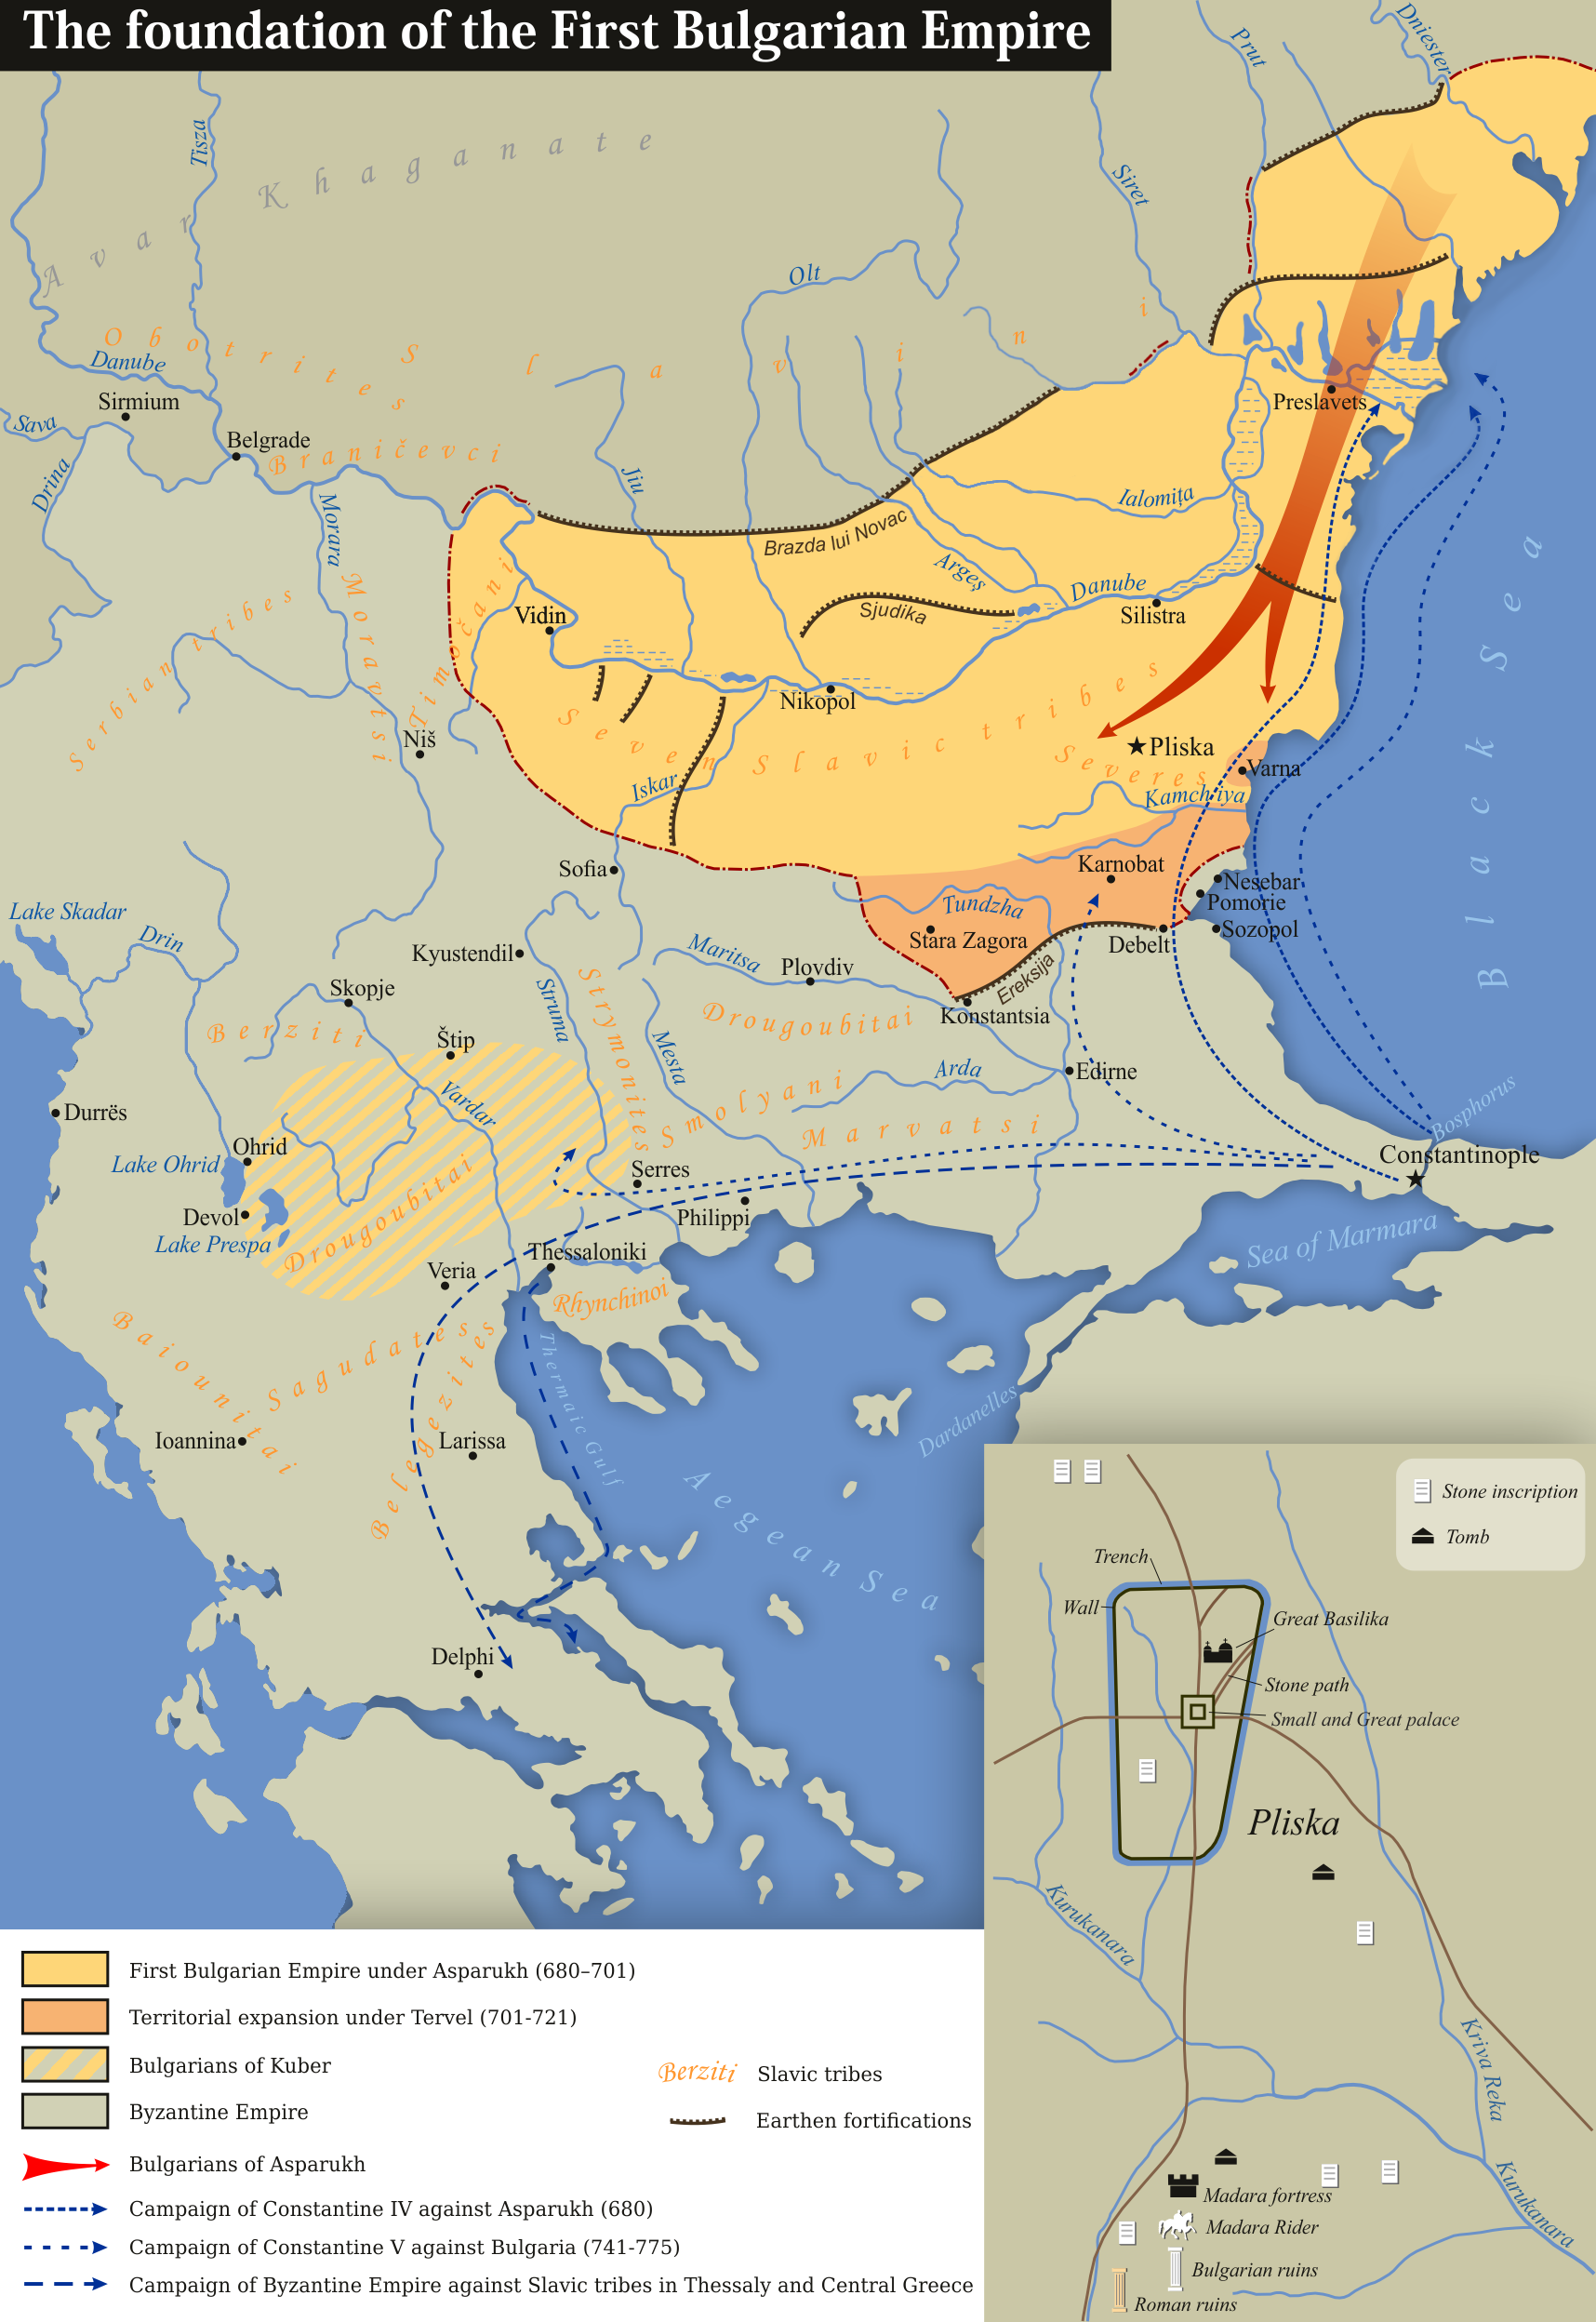 Byzantine–Bulgarian War: Army of Asparukh occupies the territory of current-day Bulgaria.